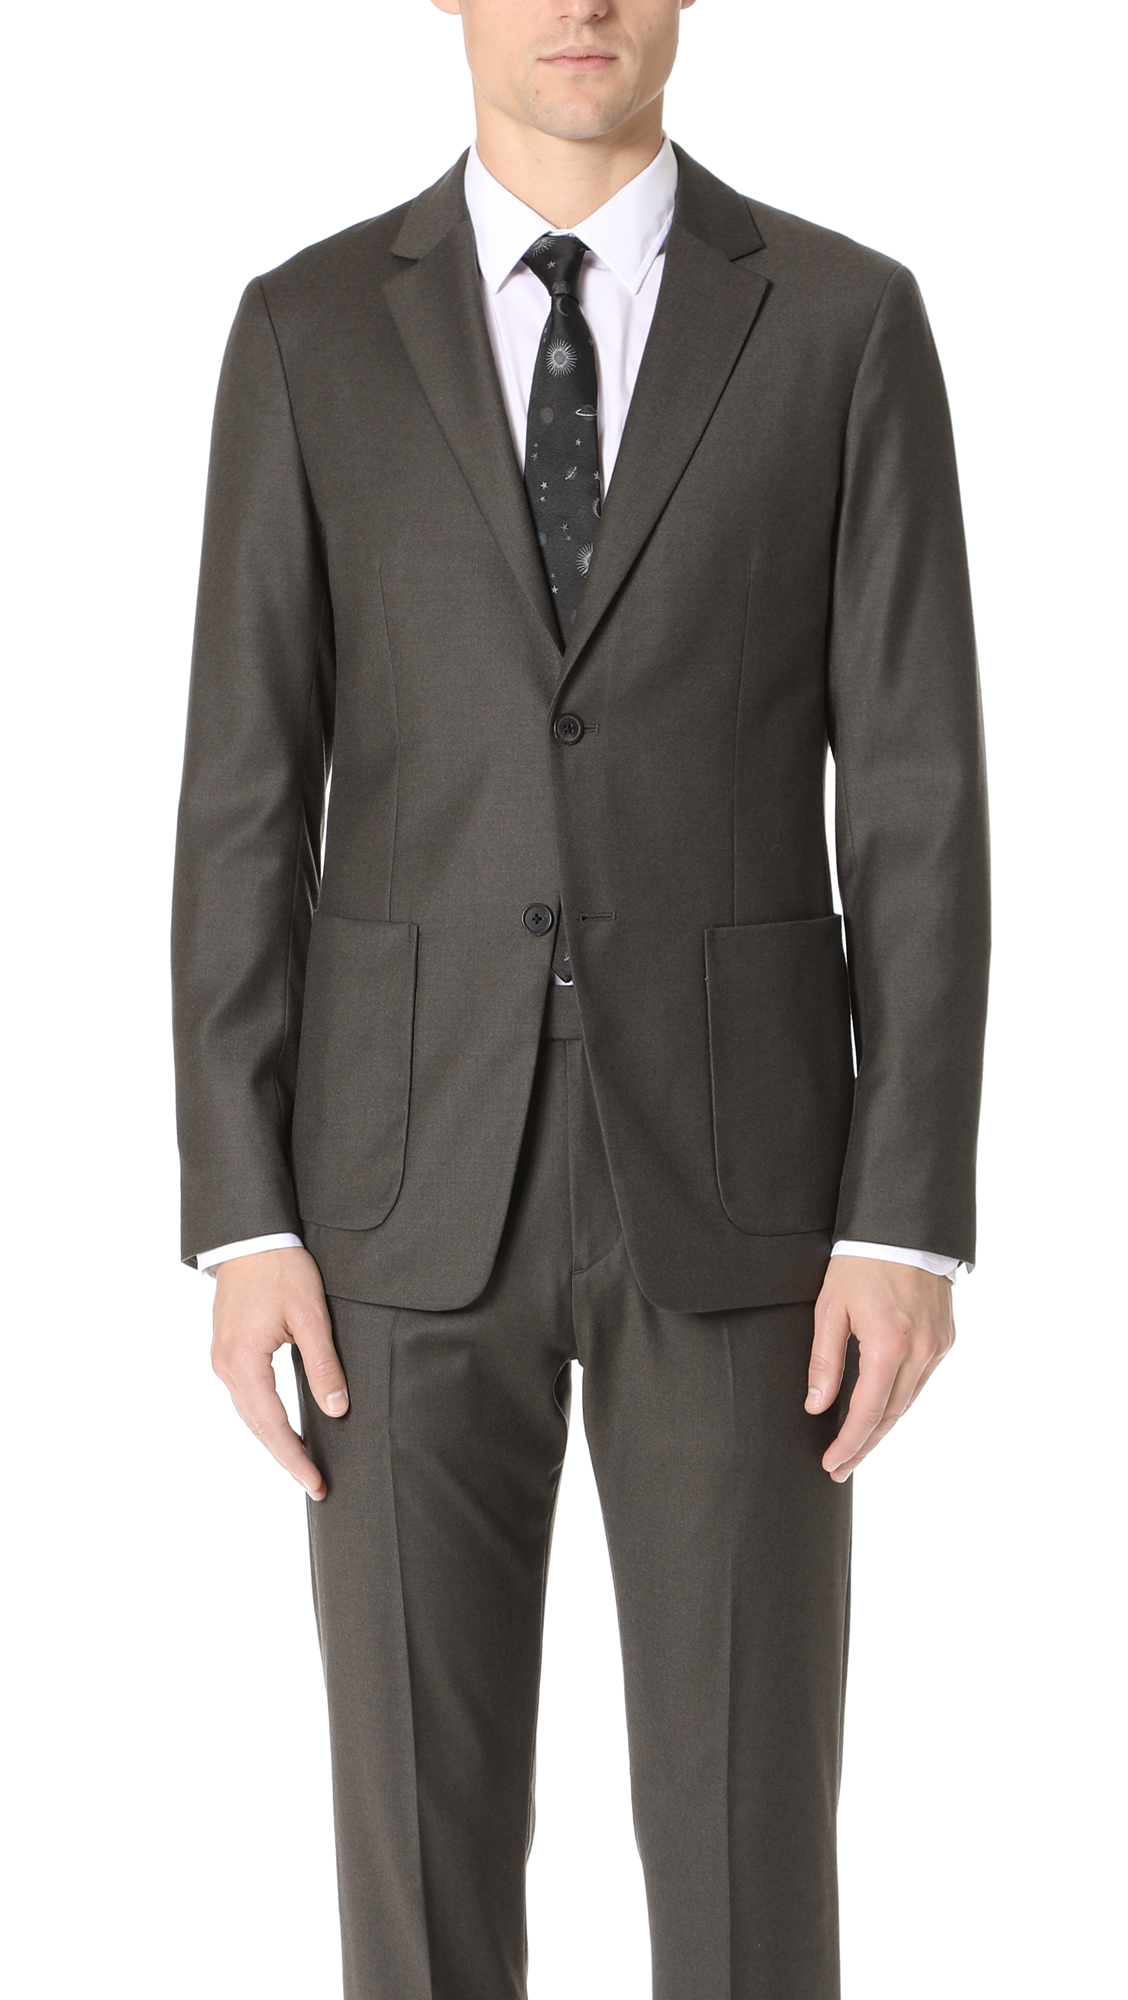 Theory Suits And Men S Blazers At Menstyle Usa